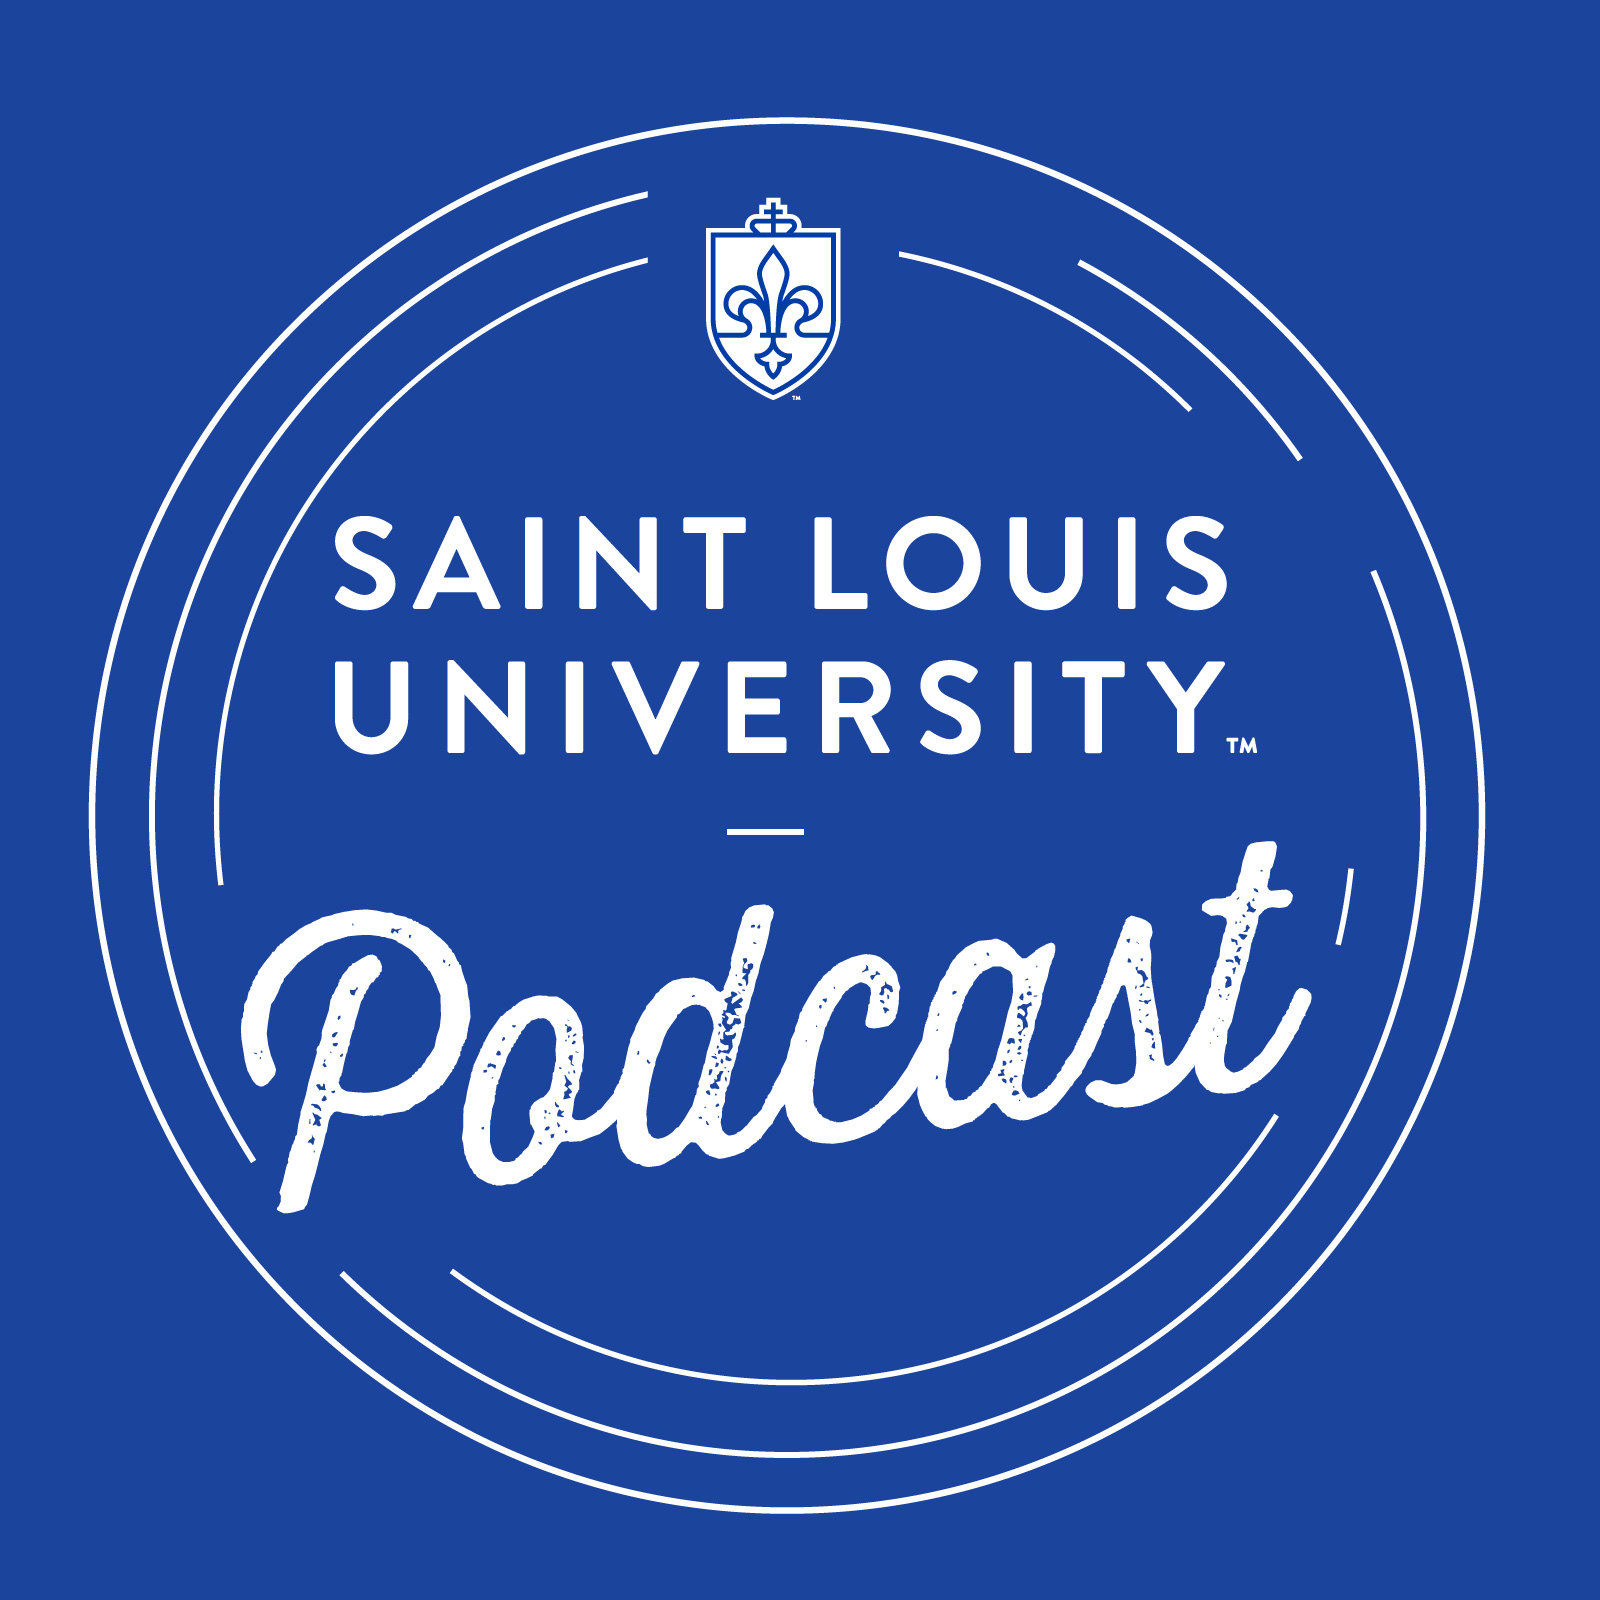 Saint Louis University Podcast show image